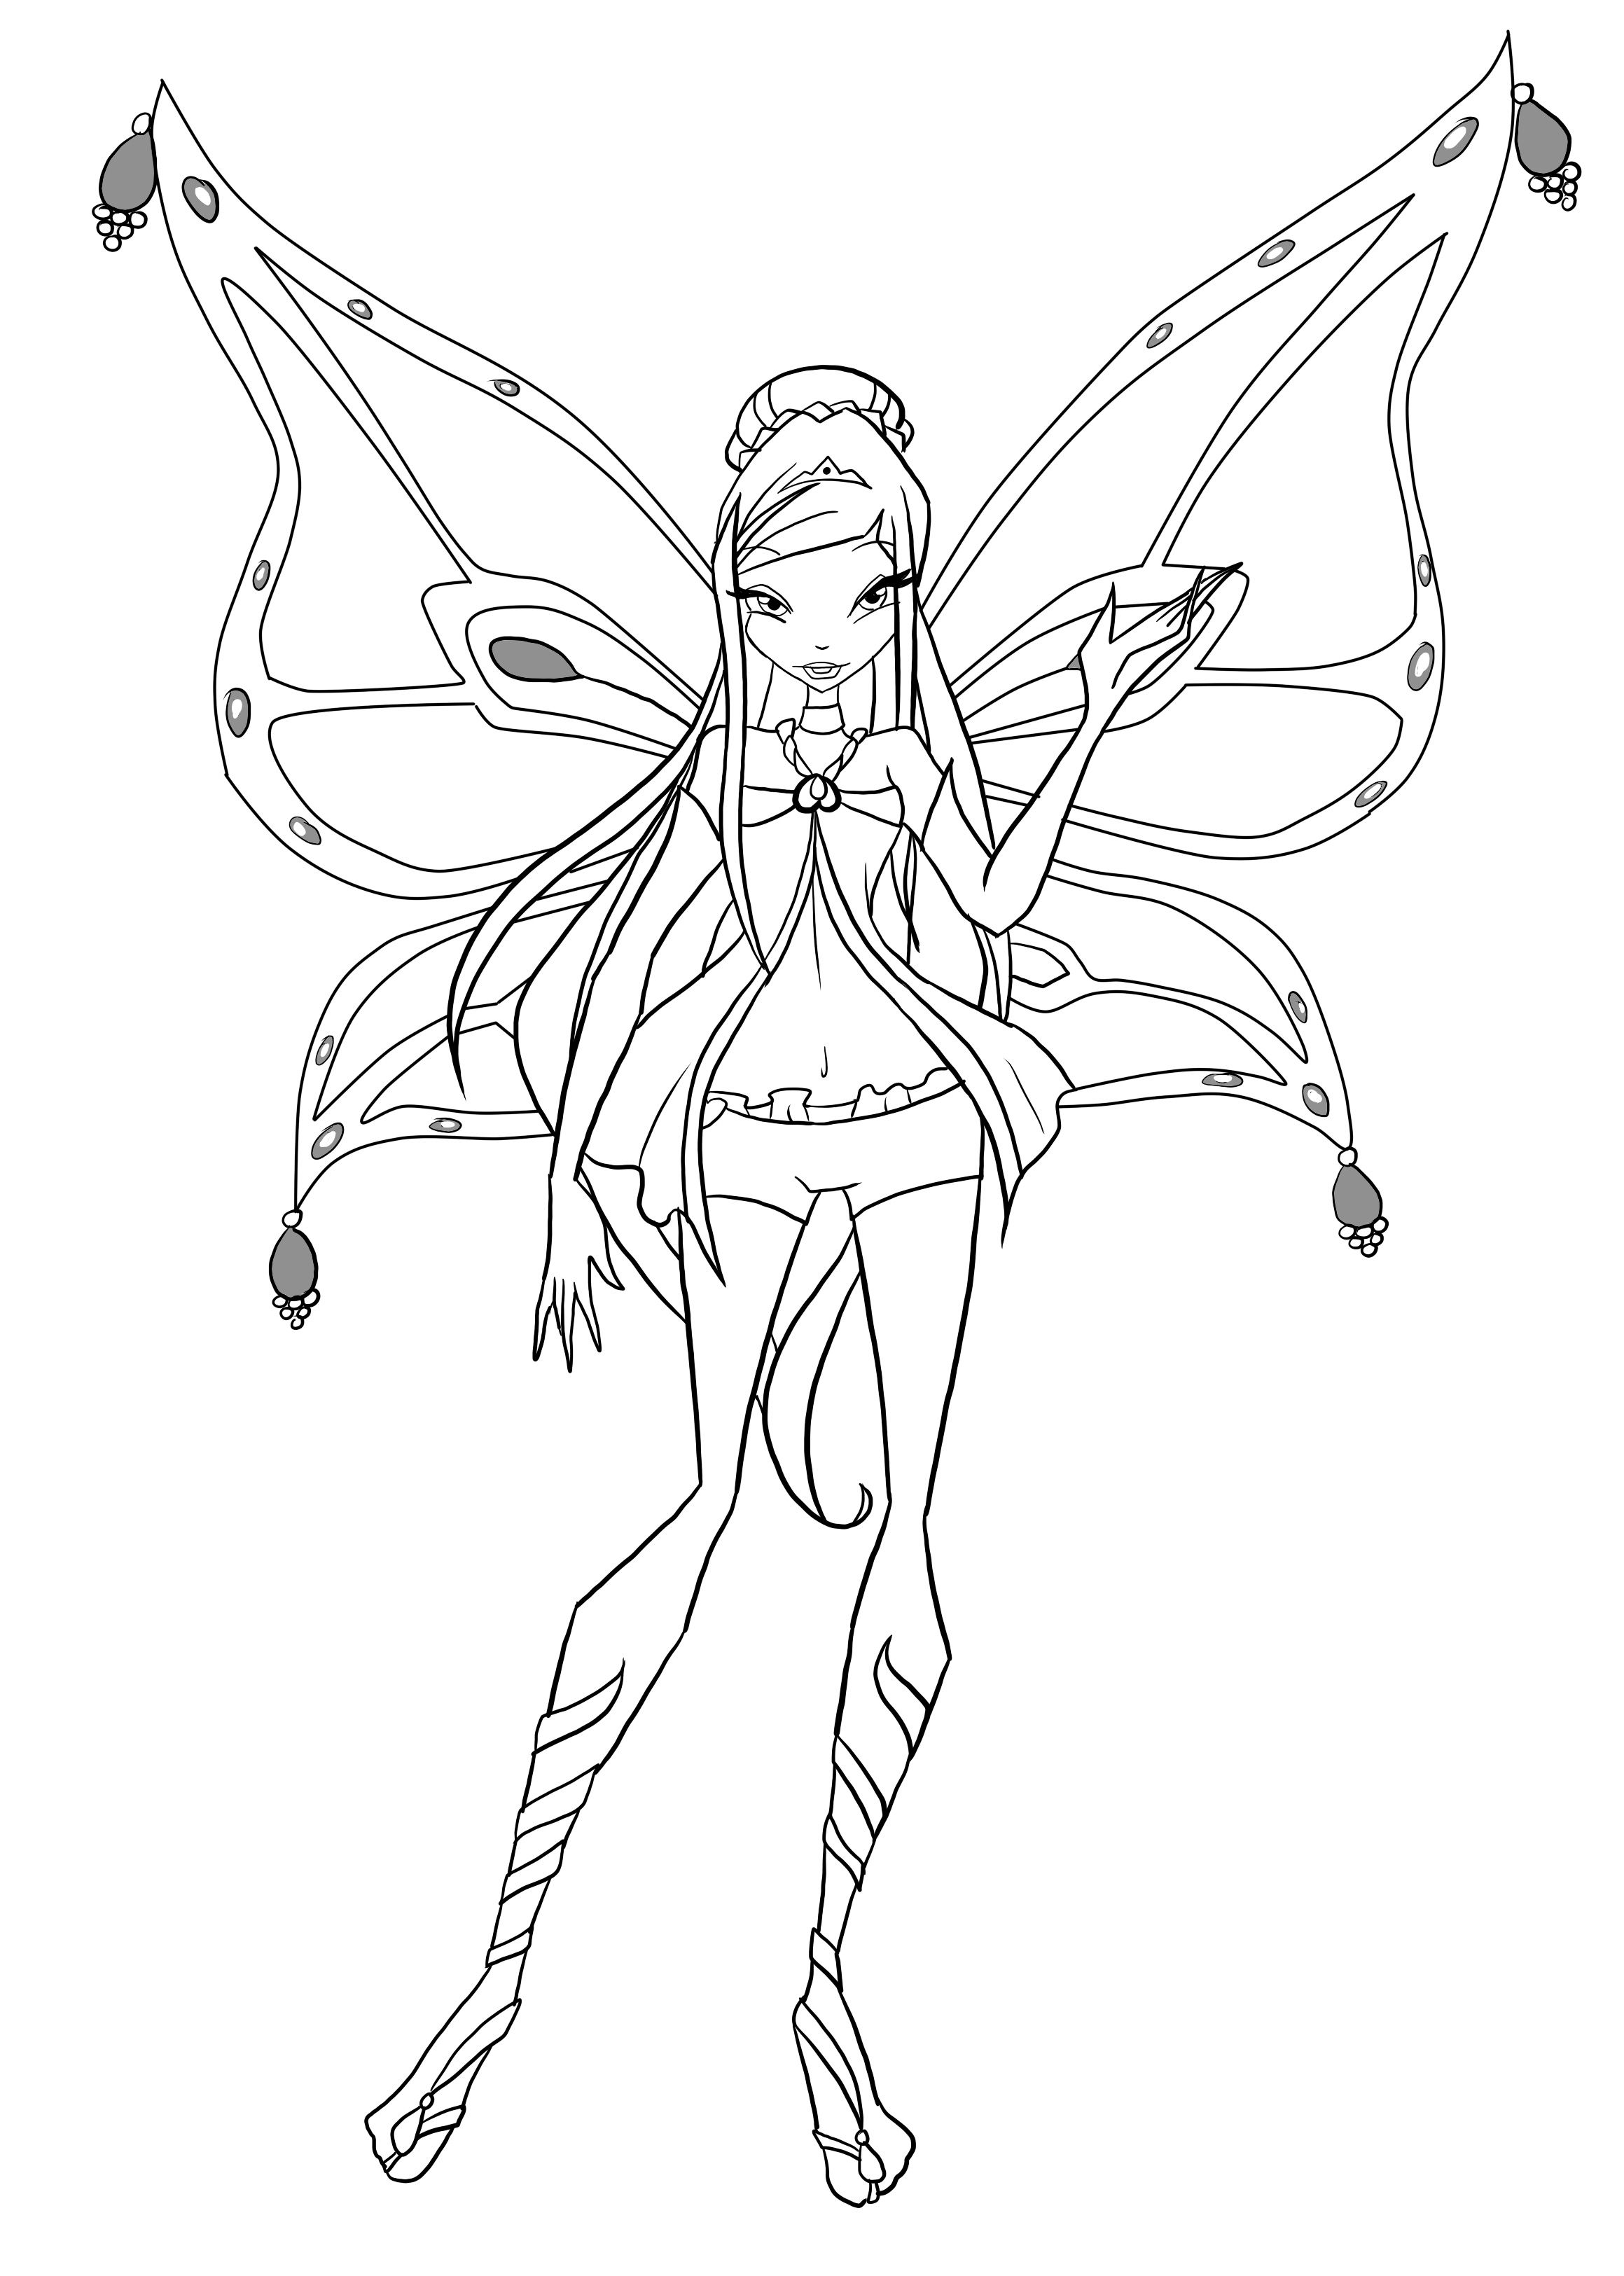 coloriage winx enchantix stella ColoriageWinx Coloriage